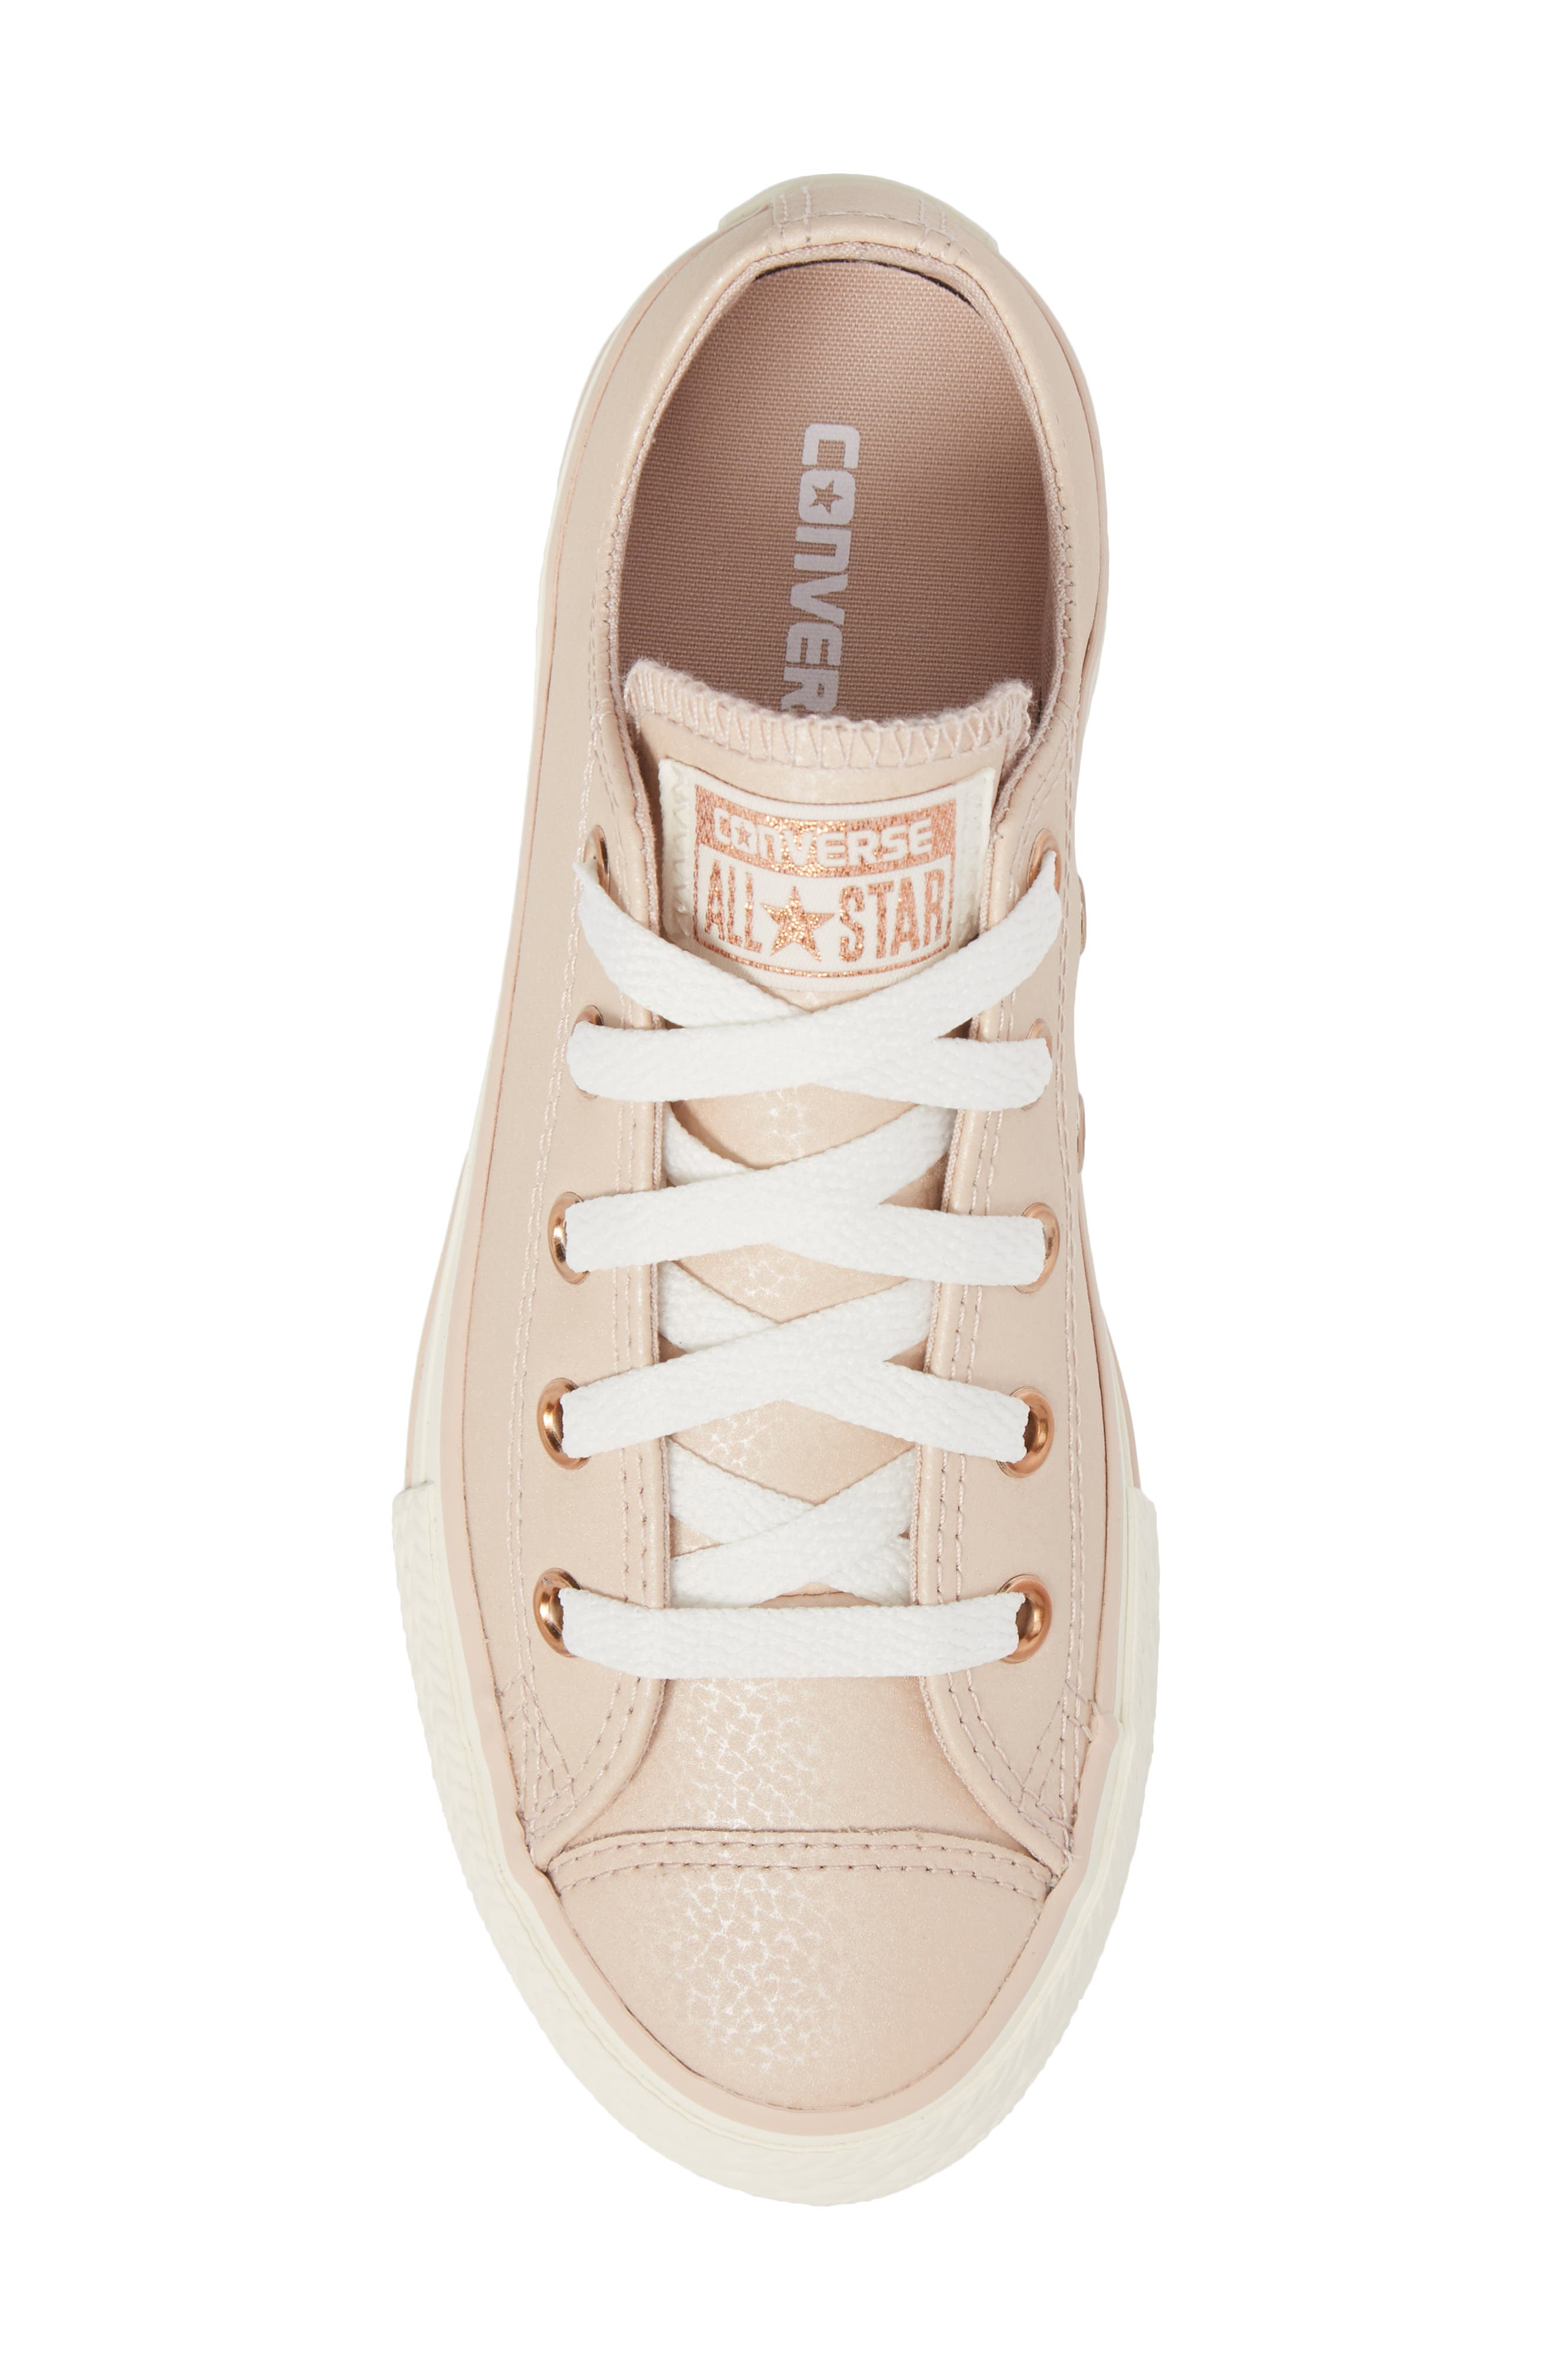 All Star<sup>®</sup> Fashion Low Top Sneaker,                             Alternate thumbnail 5, color,                             Particle Beige